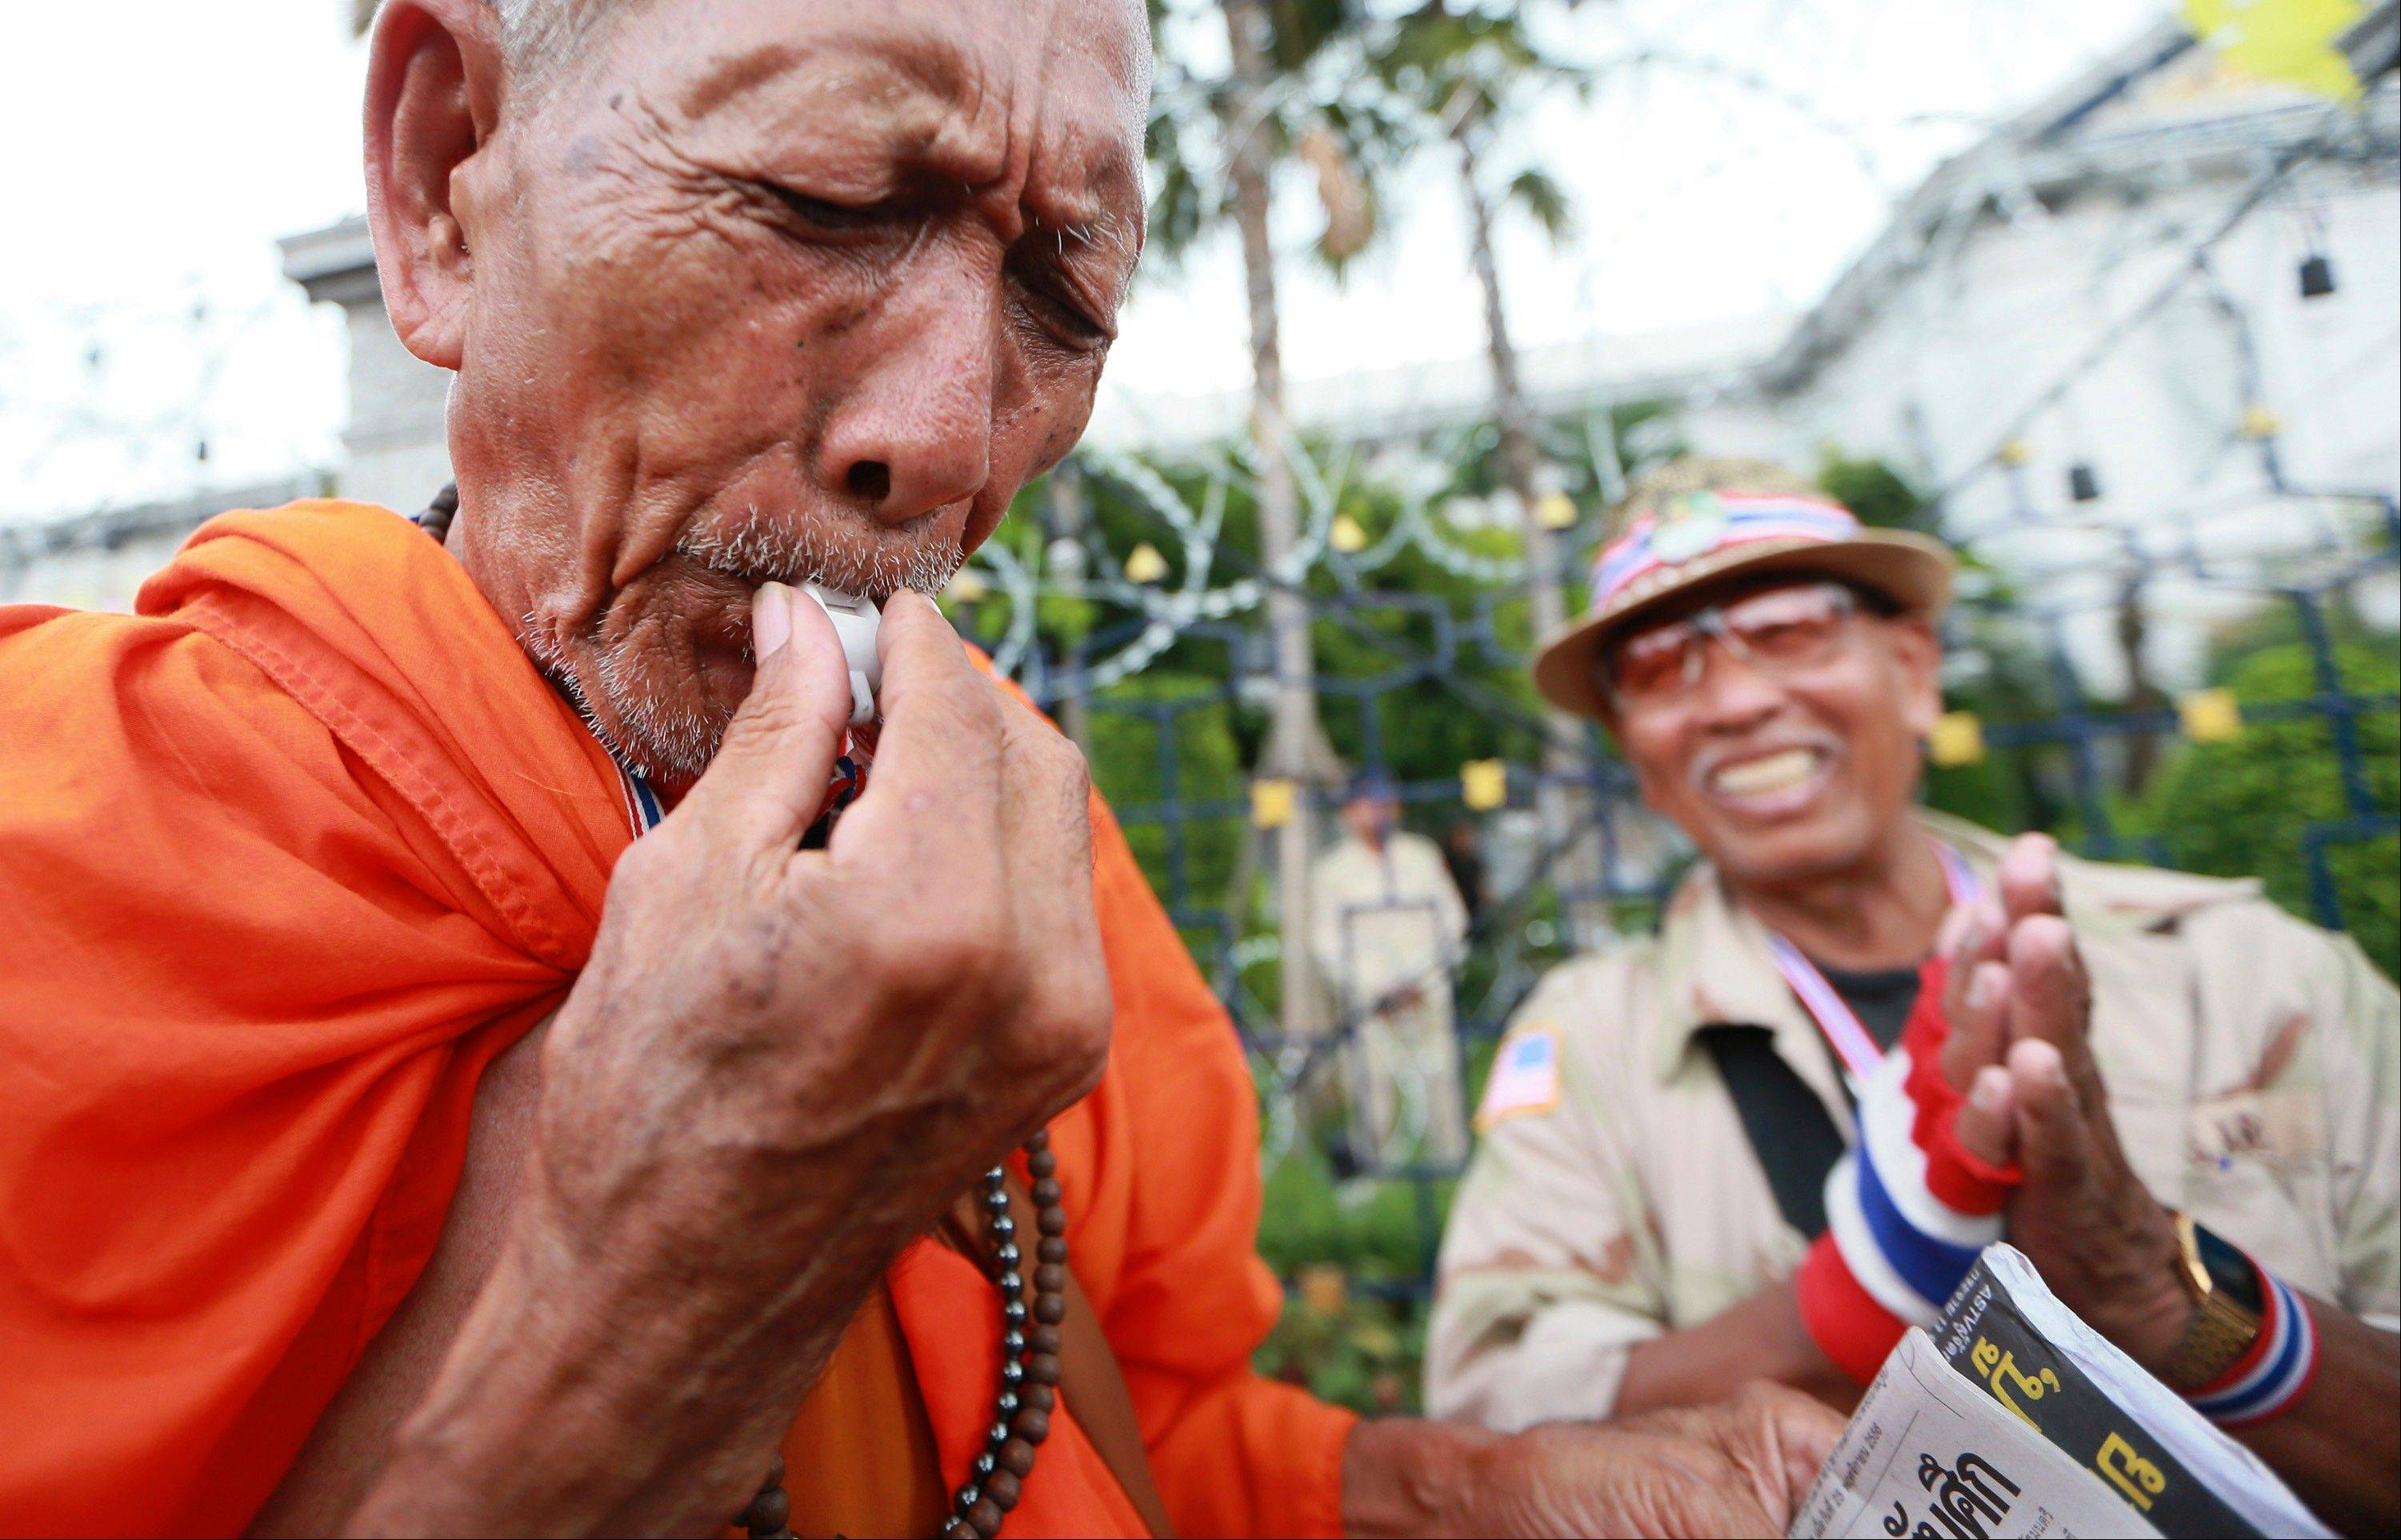 A Thai Buddhist monk blows a whistle during a rally outside Interior Ministry in Bangkok, Thailand, Tuesday, Nov. 26, 2013. Protesters forced the closure of several government ministries Tuesday and vowed to take control of state offices nationwide in a bid to oust Prime Minister Yingluck Shinawatra, escalating the biggest challenge she has faced since taking office.